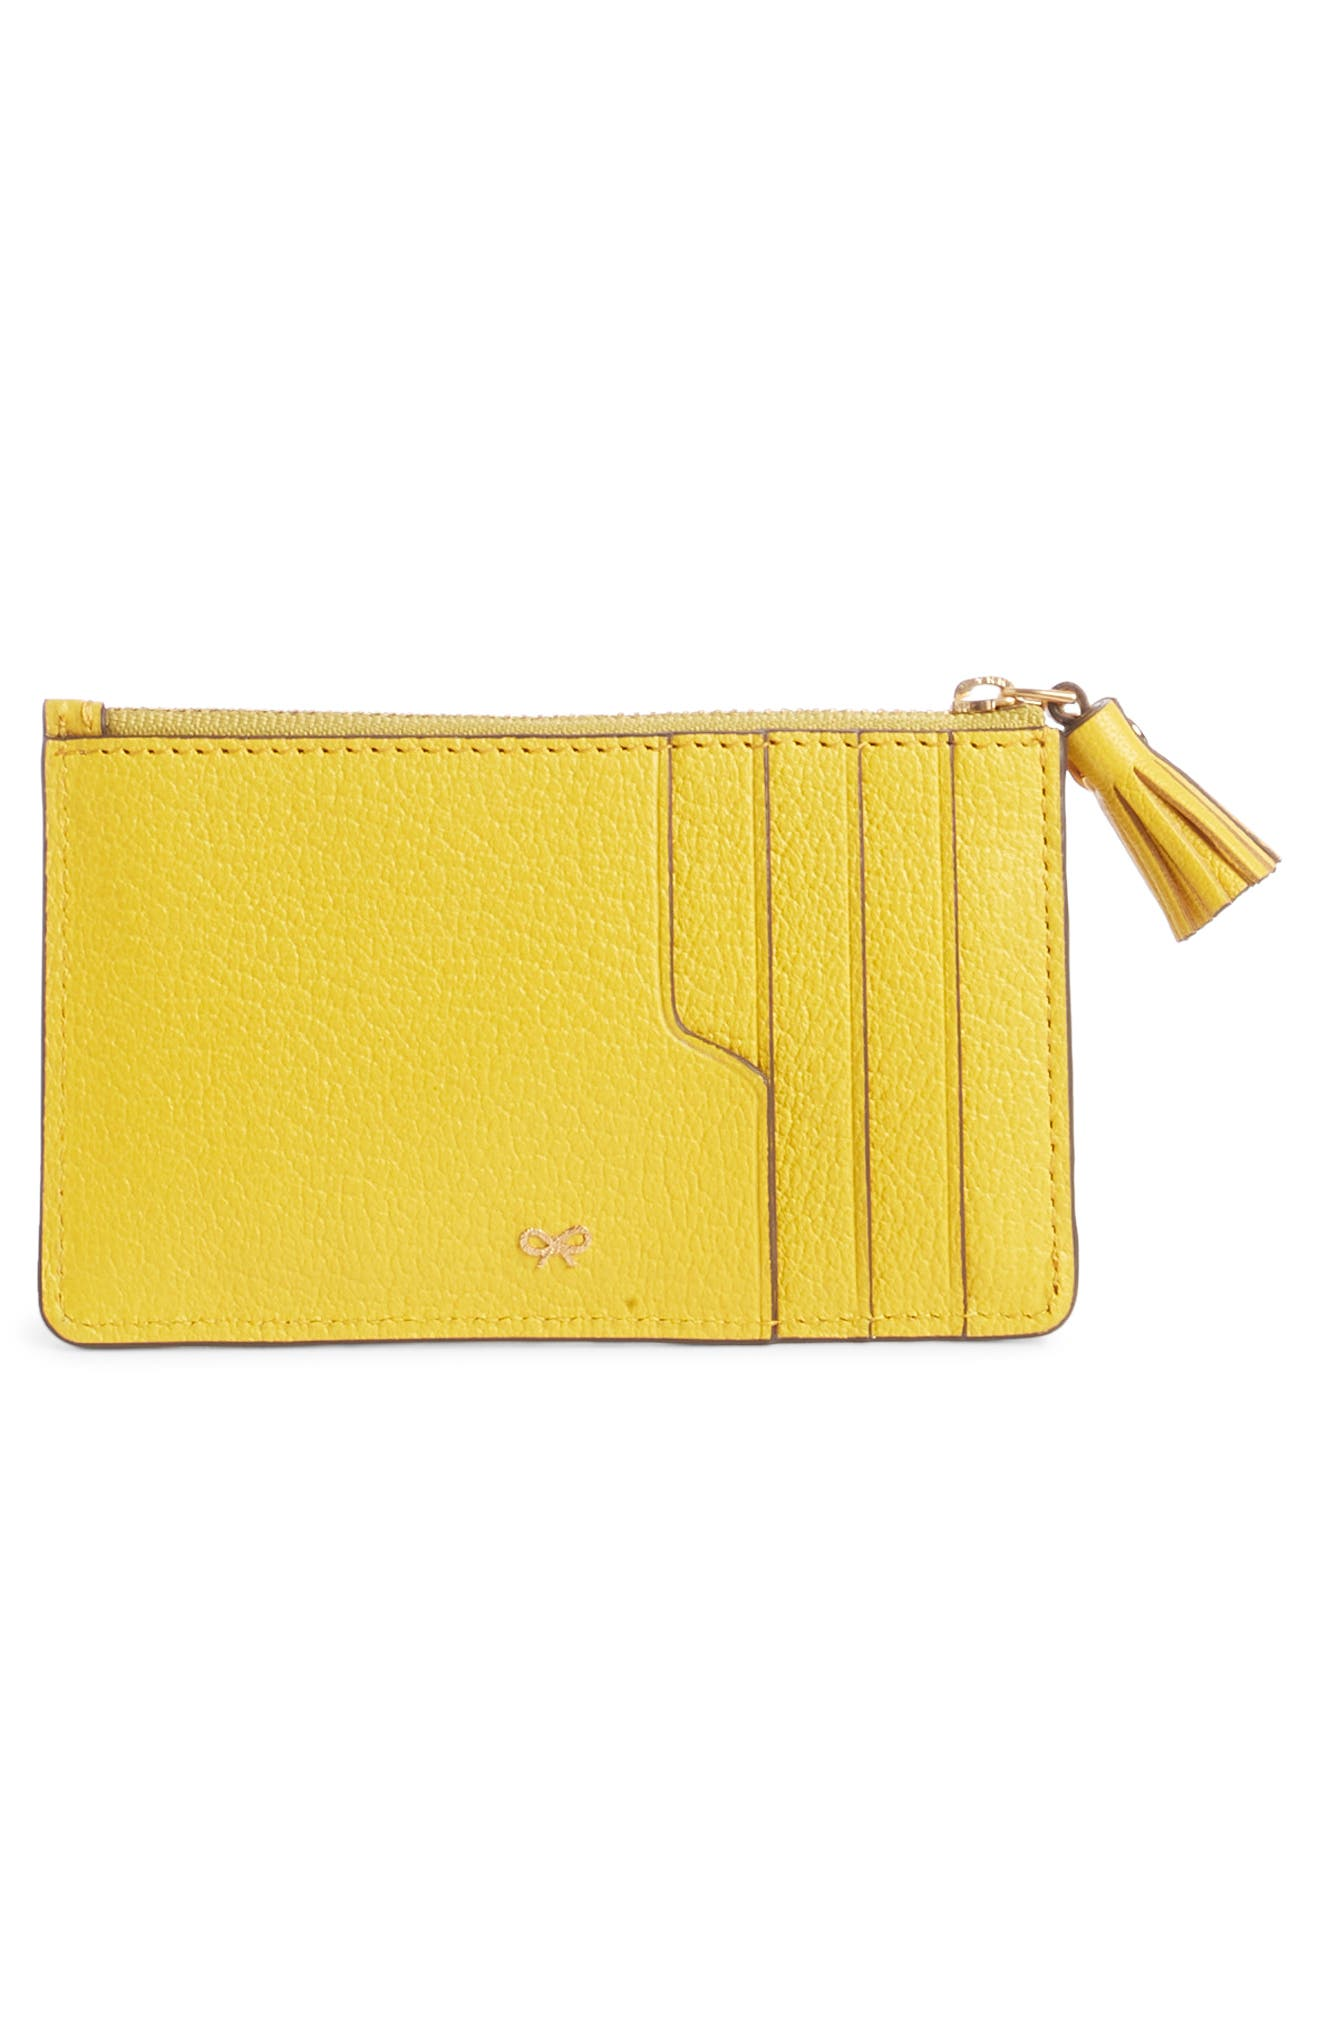 ANYA HINDMARCH, Eyes Leather Card Case, Alternate thumbnail 2, color, YELLOW